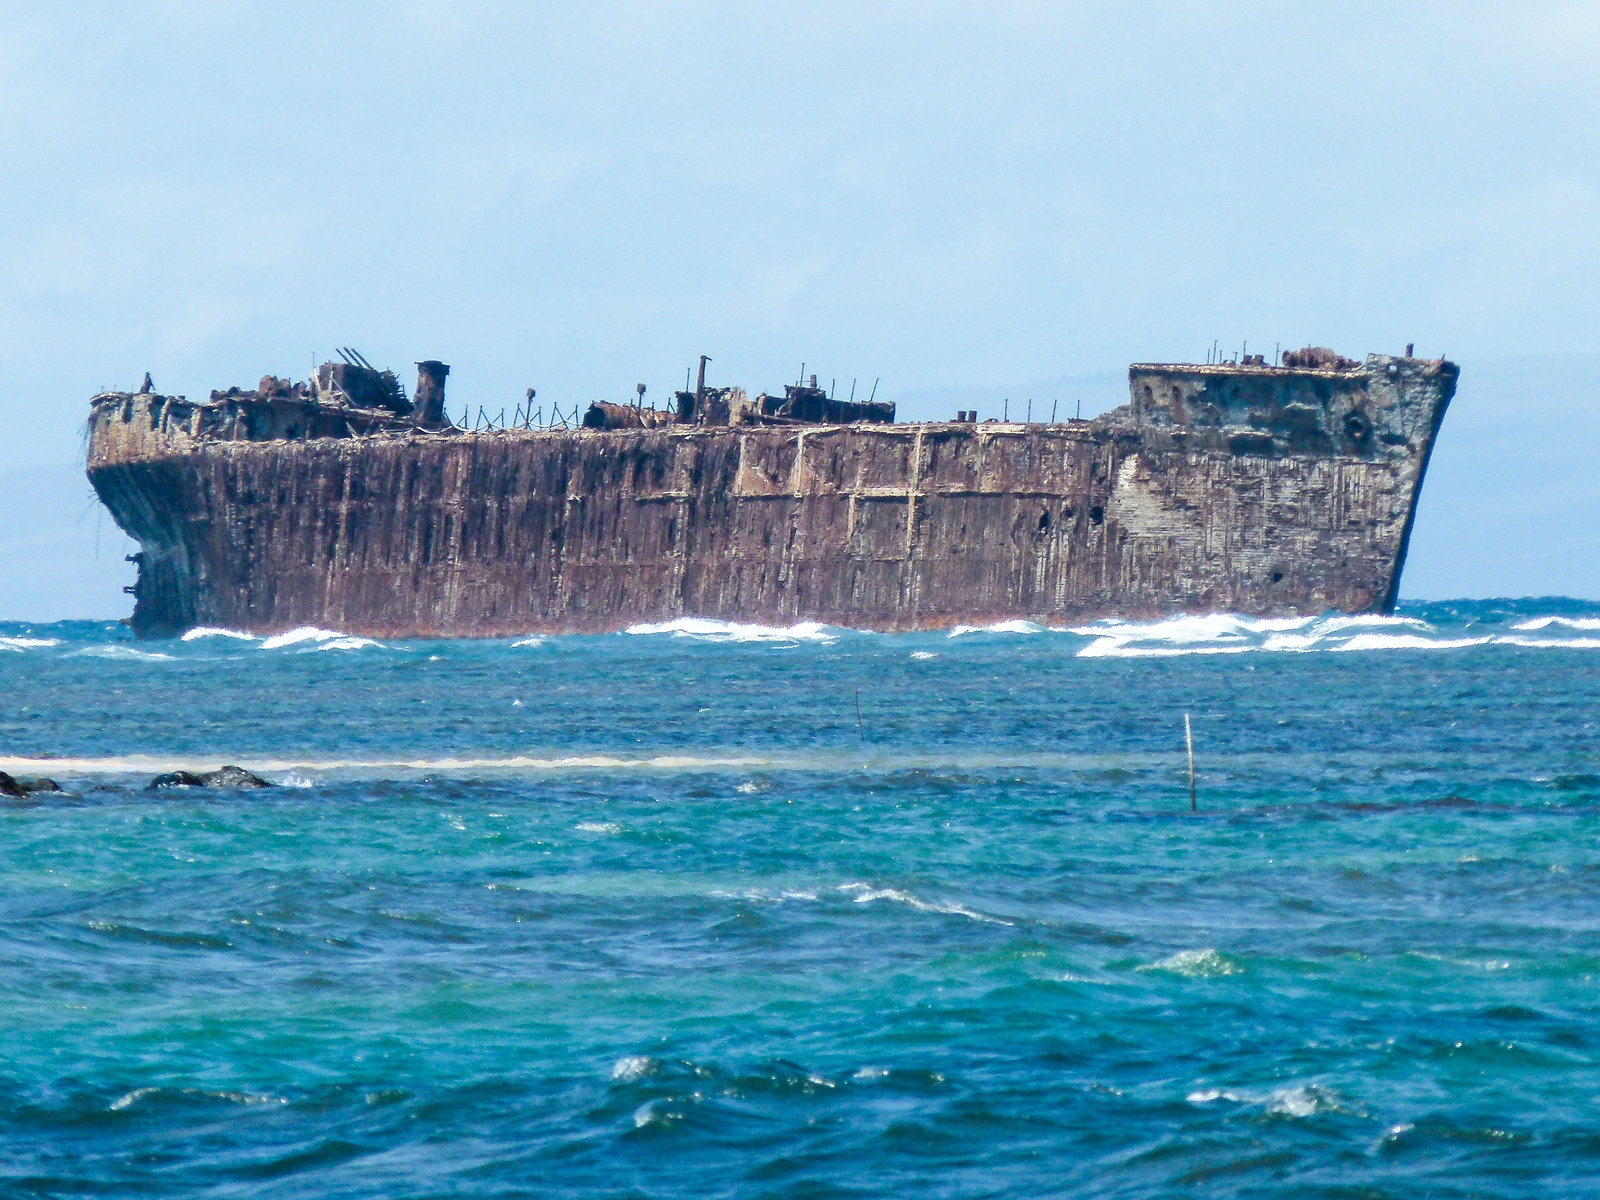 A shipwreck in the blue ocean off the coast of Lanai.